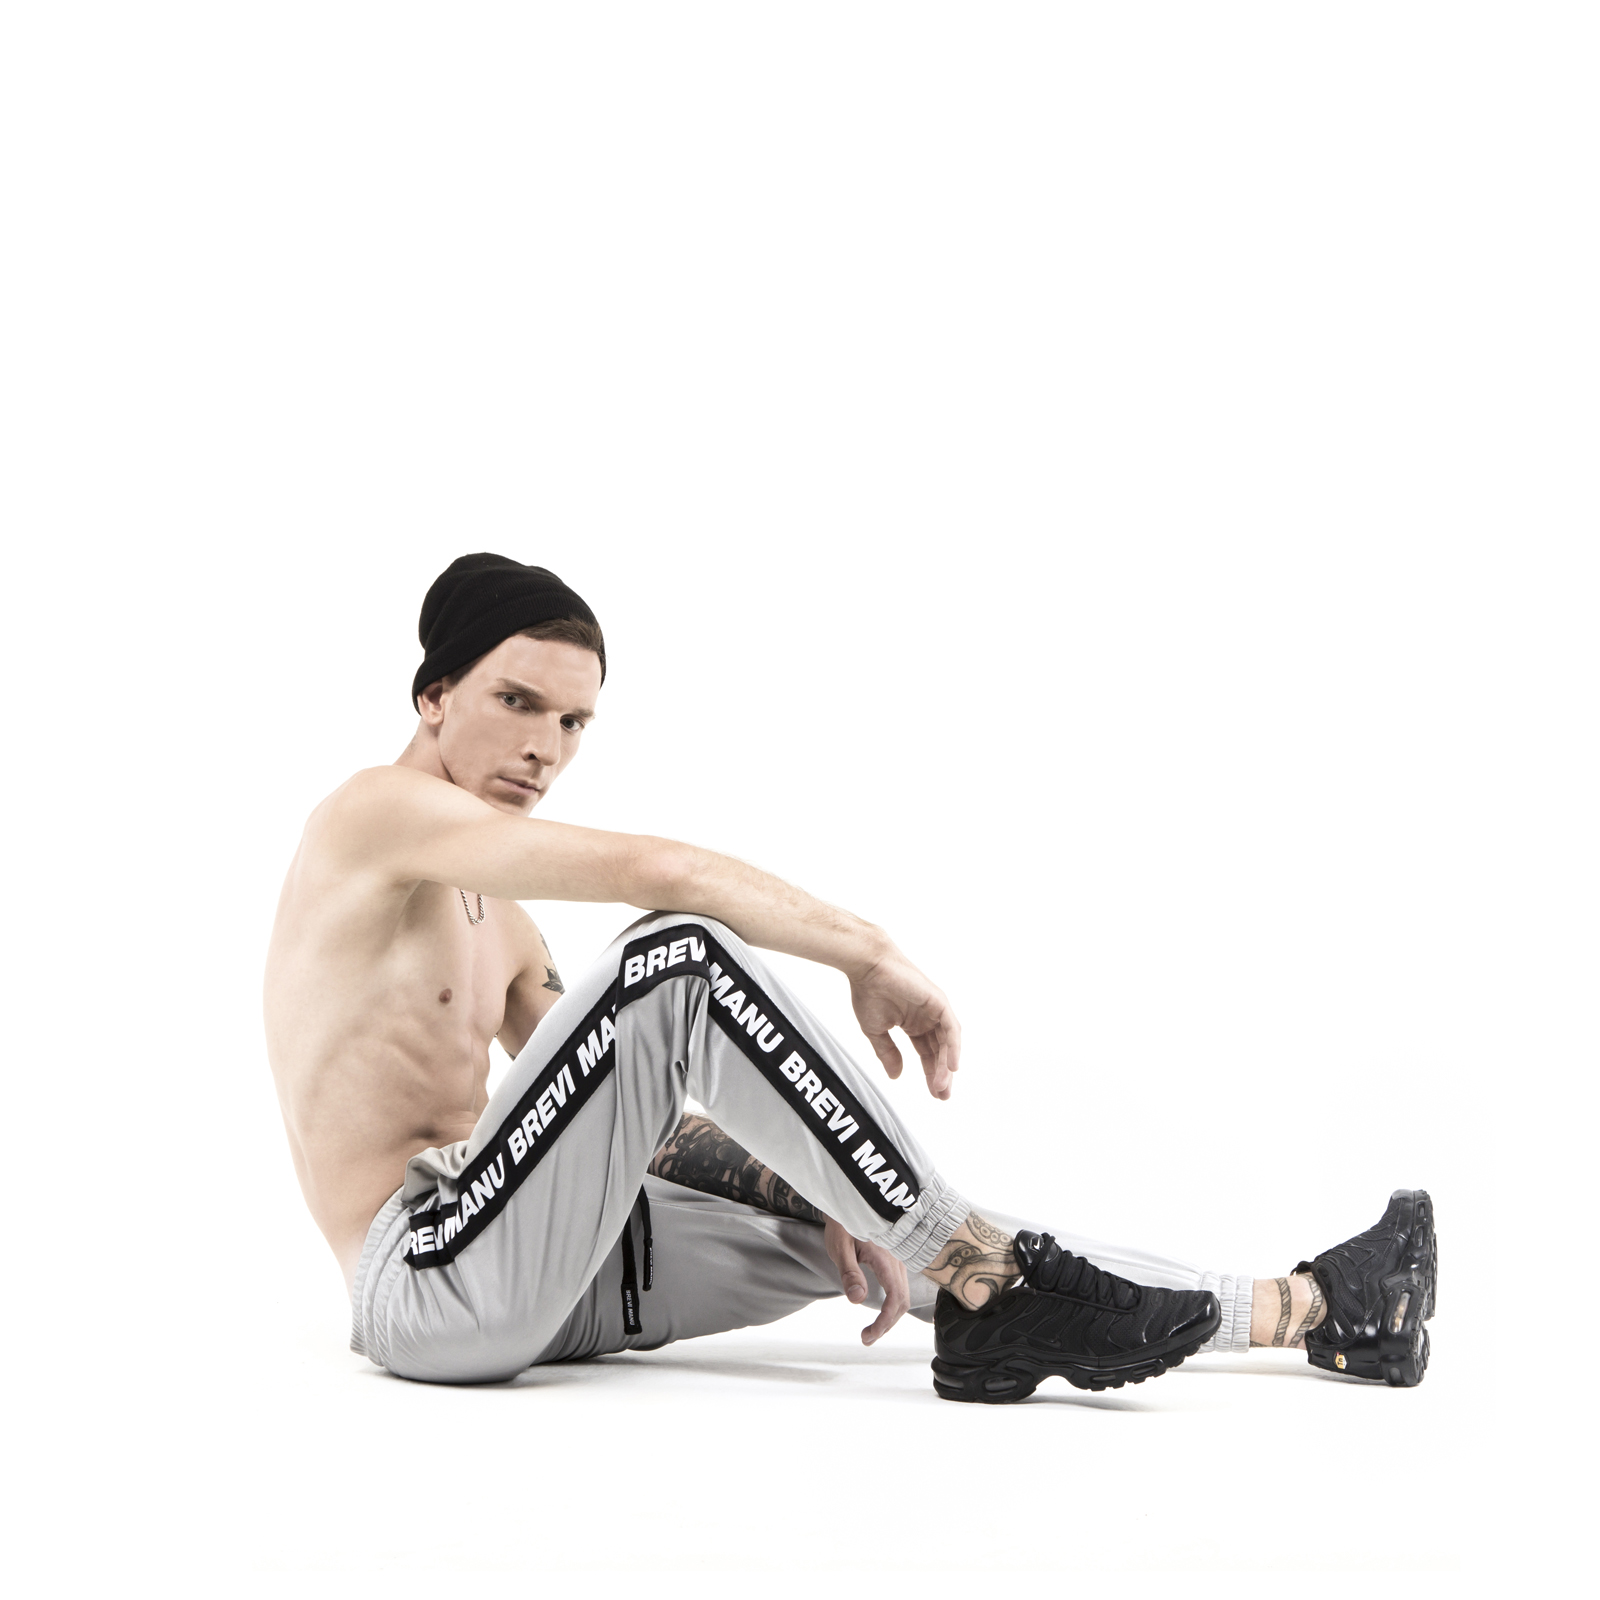 SPRINT PANTS COLLECTION